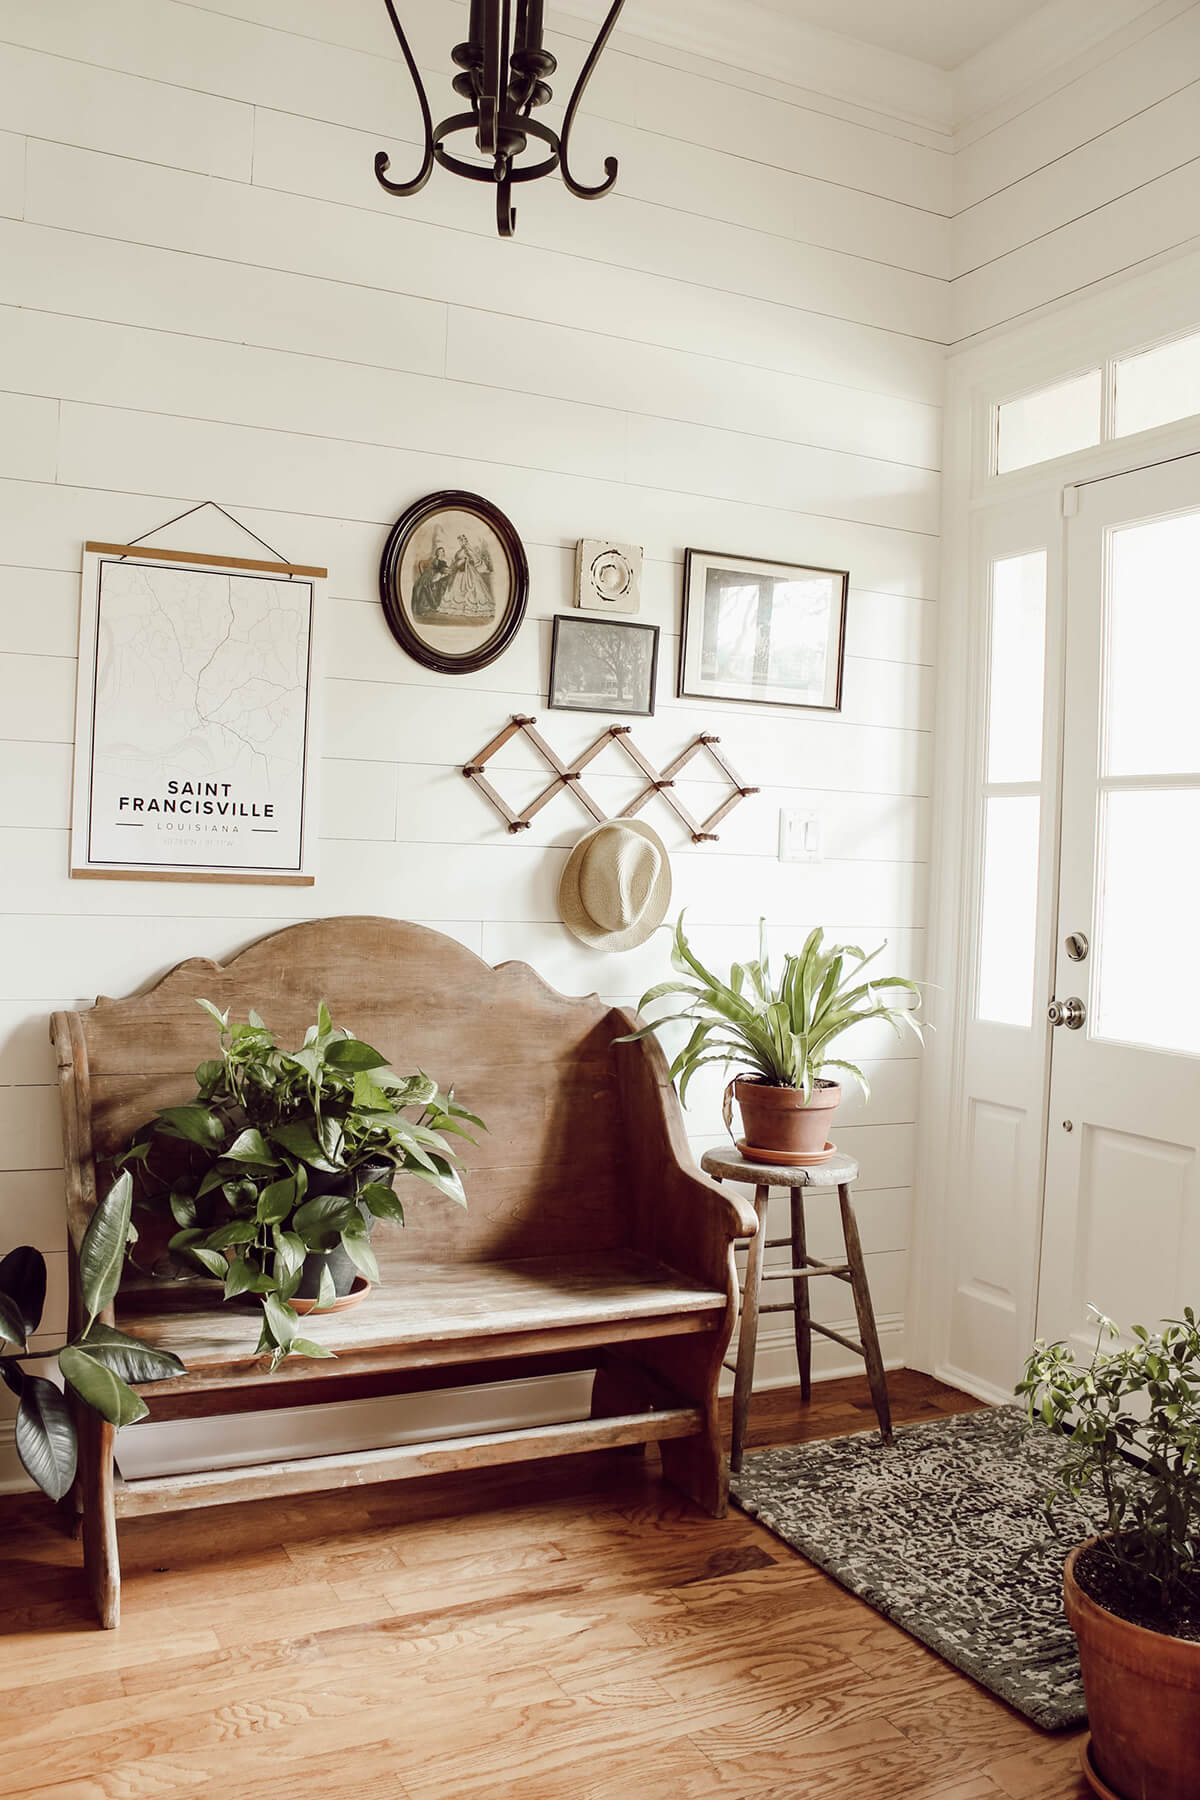 Light and Airy with Plants and Wood